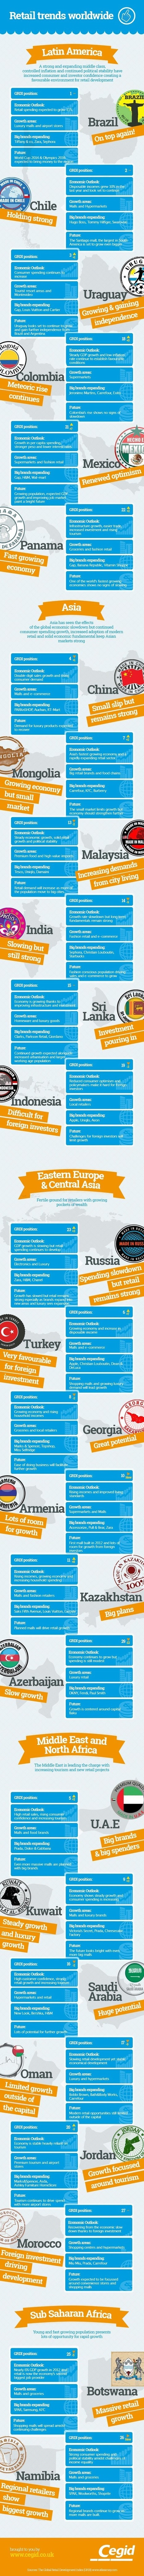 Retail Trends across Top 20 Major Countries   Infographic   All Infographics   Scoop.it